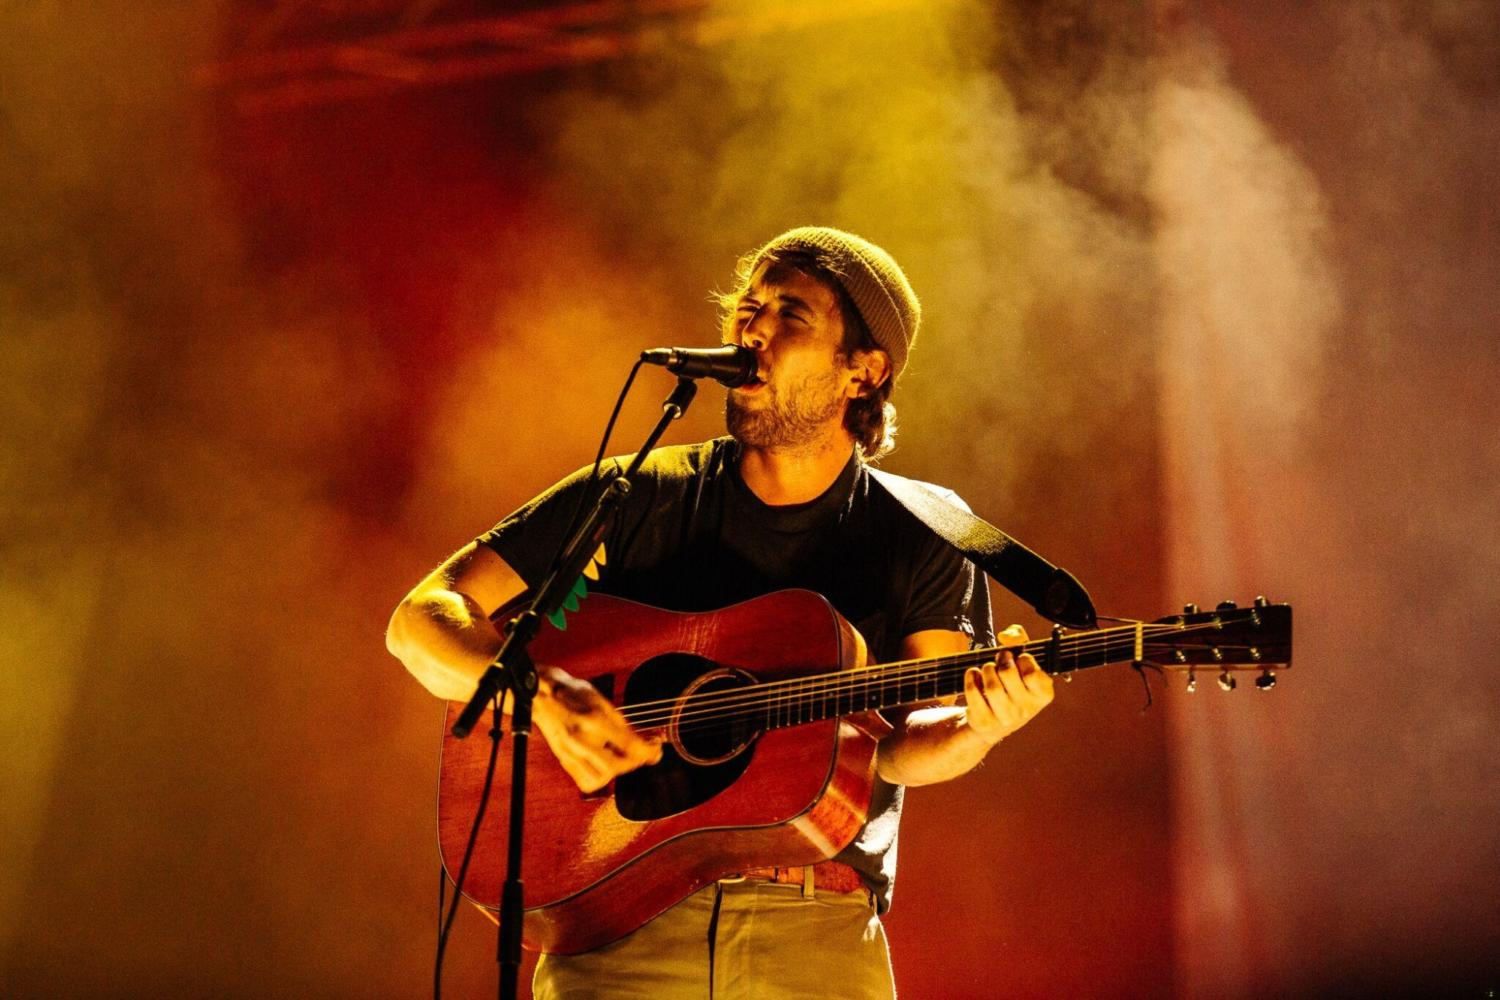 Fleet Foxes announce boxset 'First Collection 2006 – 2009', including B-sides and Rarities